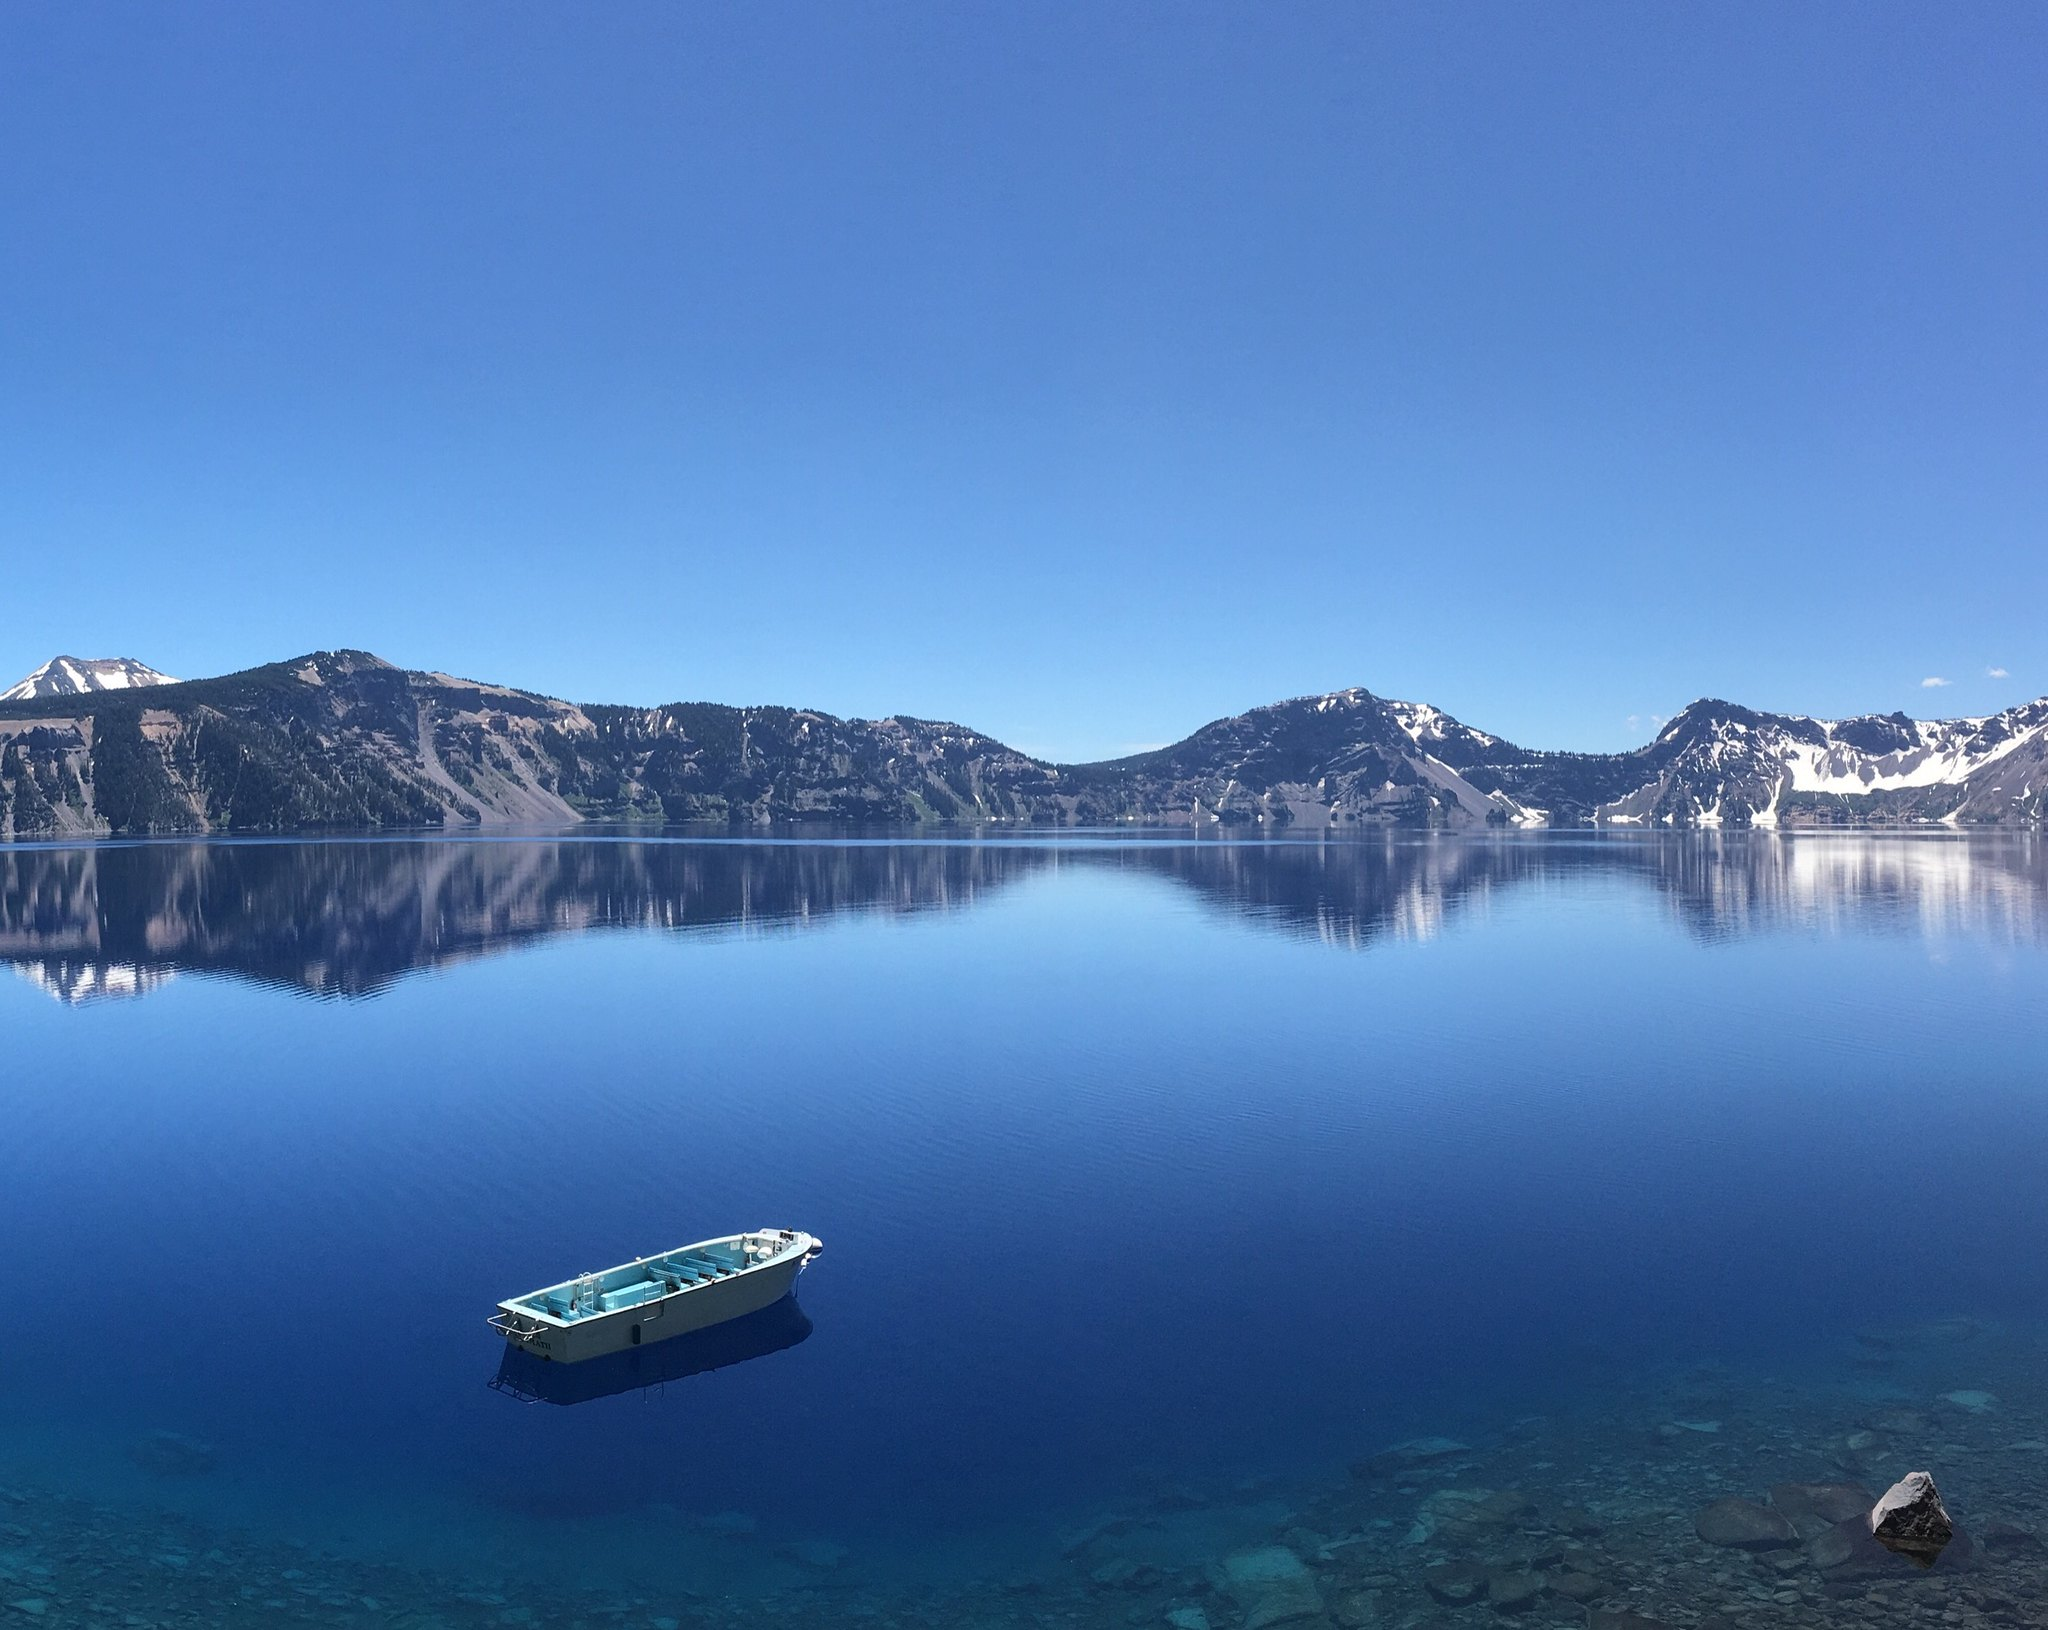 Boat in Crater Lake